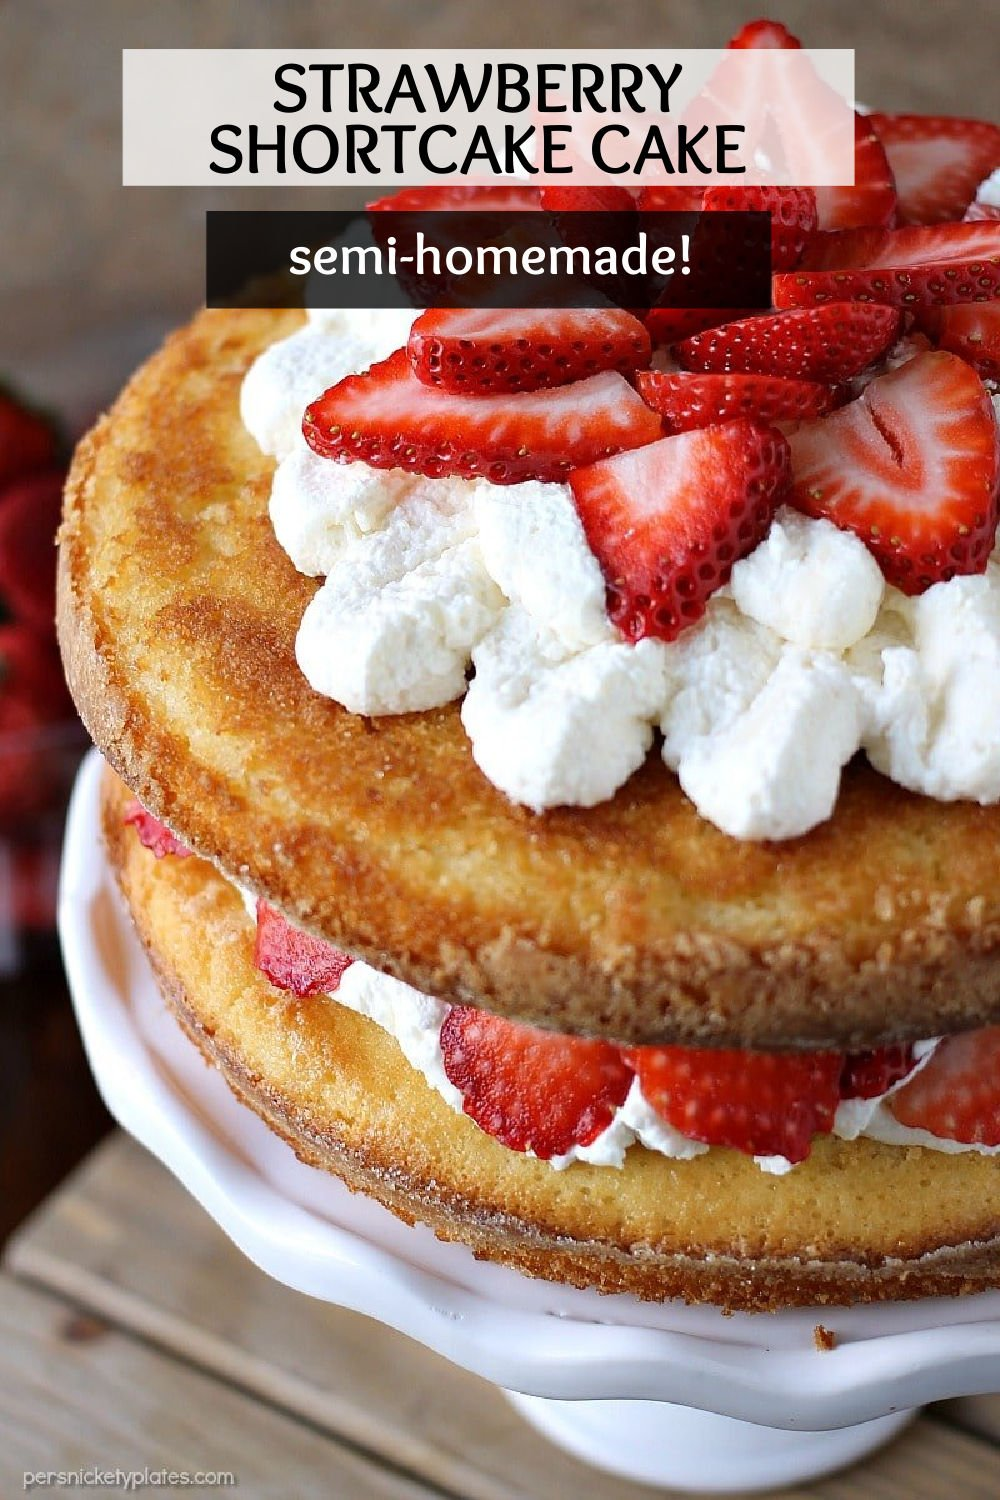 Strawberry Shortcake Cake is a rustic vanilla layer cake filled with a whipped cream cheese frosting and fresh strawberries. Easy, impressive, and SO good!   www.persnicketyplates.com AD